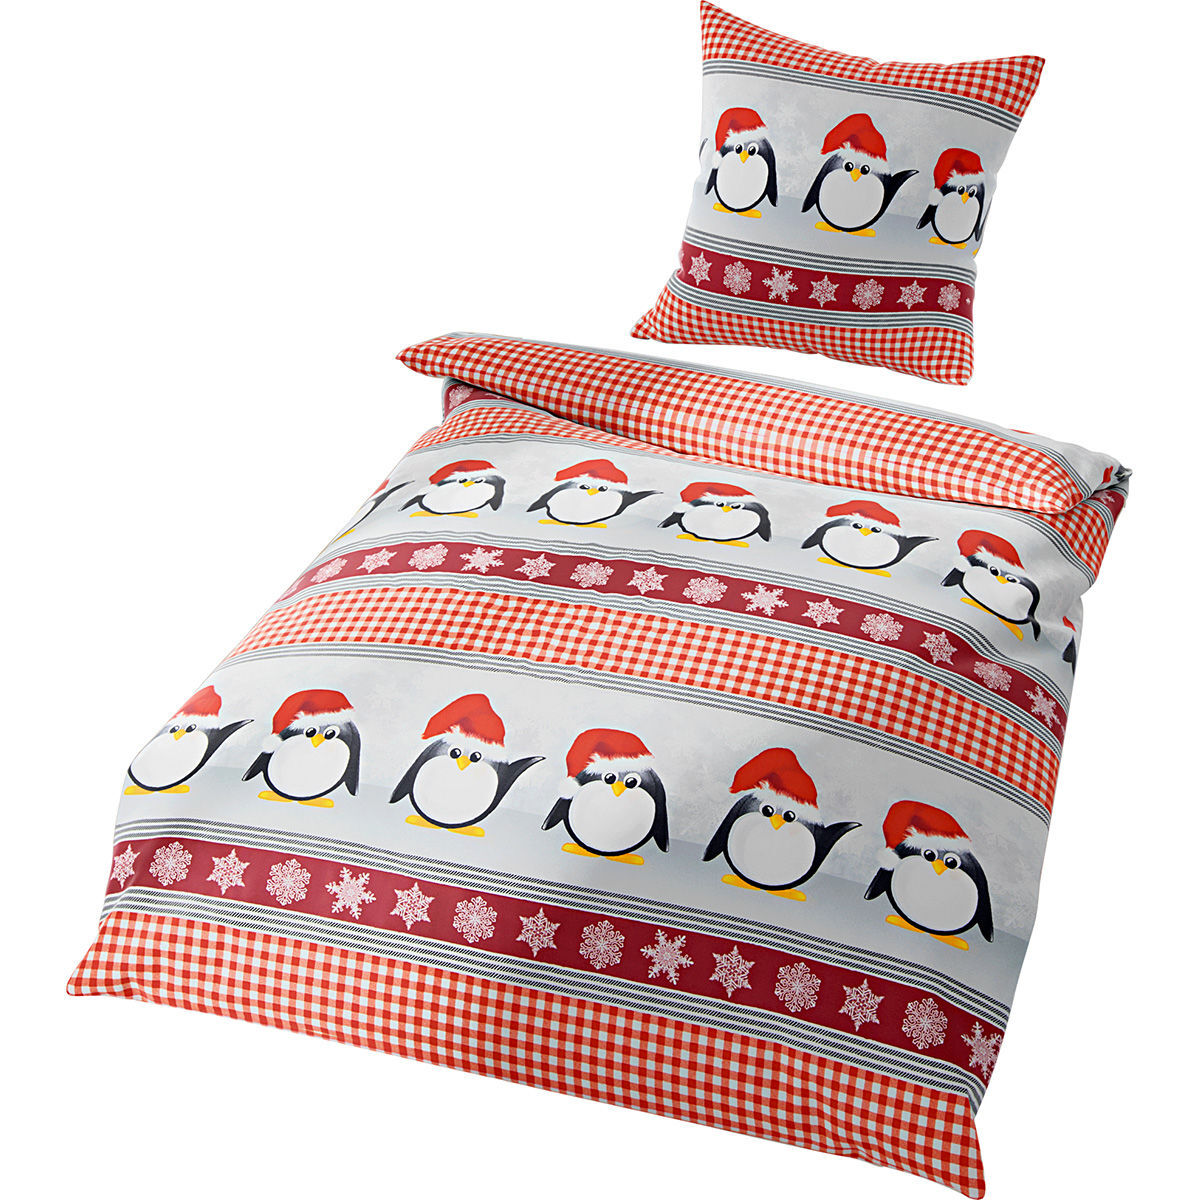 bierbaum biber bettw sche pinguine 135x200 cm karstadt online shop. Black Bedroom Furniture Sets. Home Design Ideas